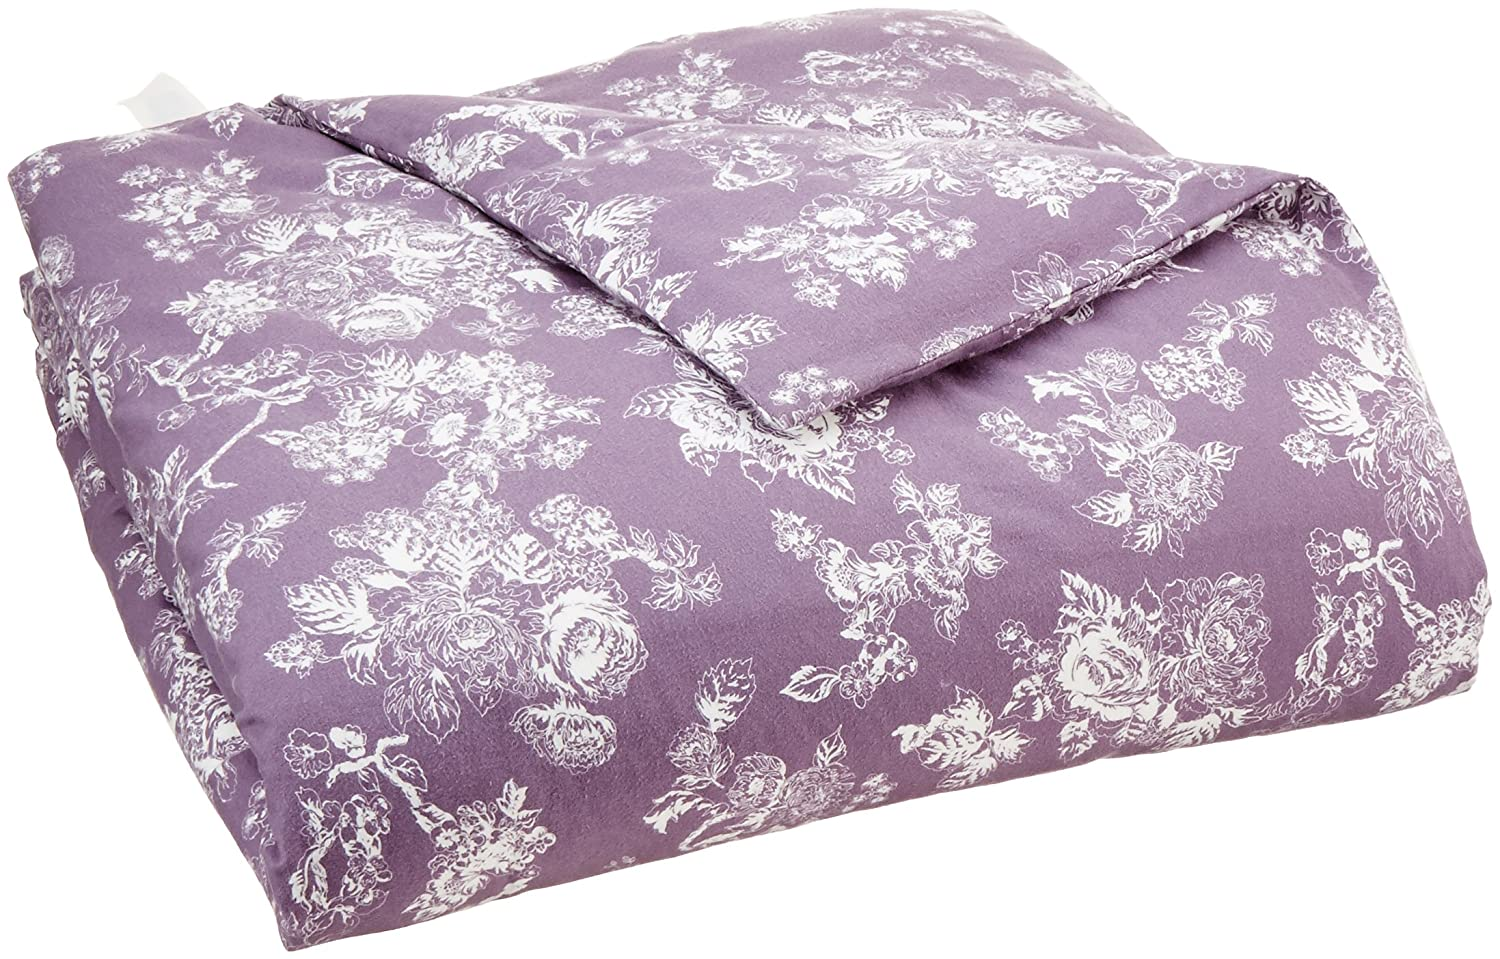 AmazonBasics Printed Lightweight Flannel Duvet Cover - Full/Queen, Floral Grey